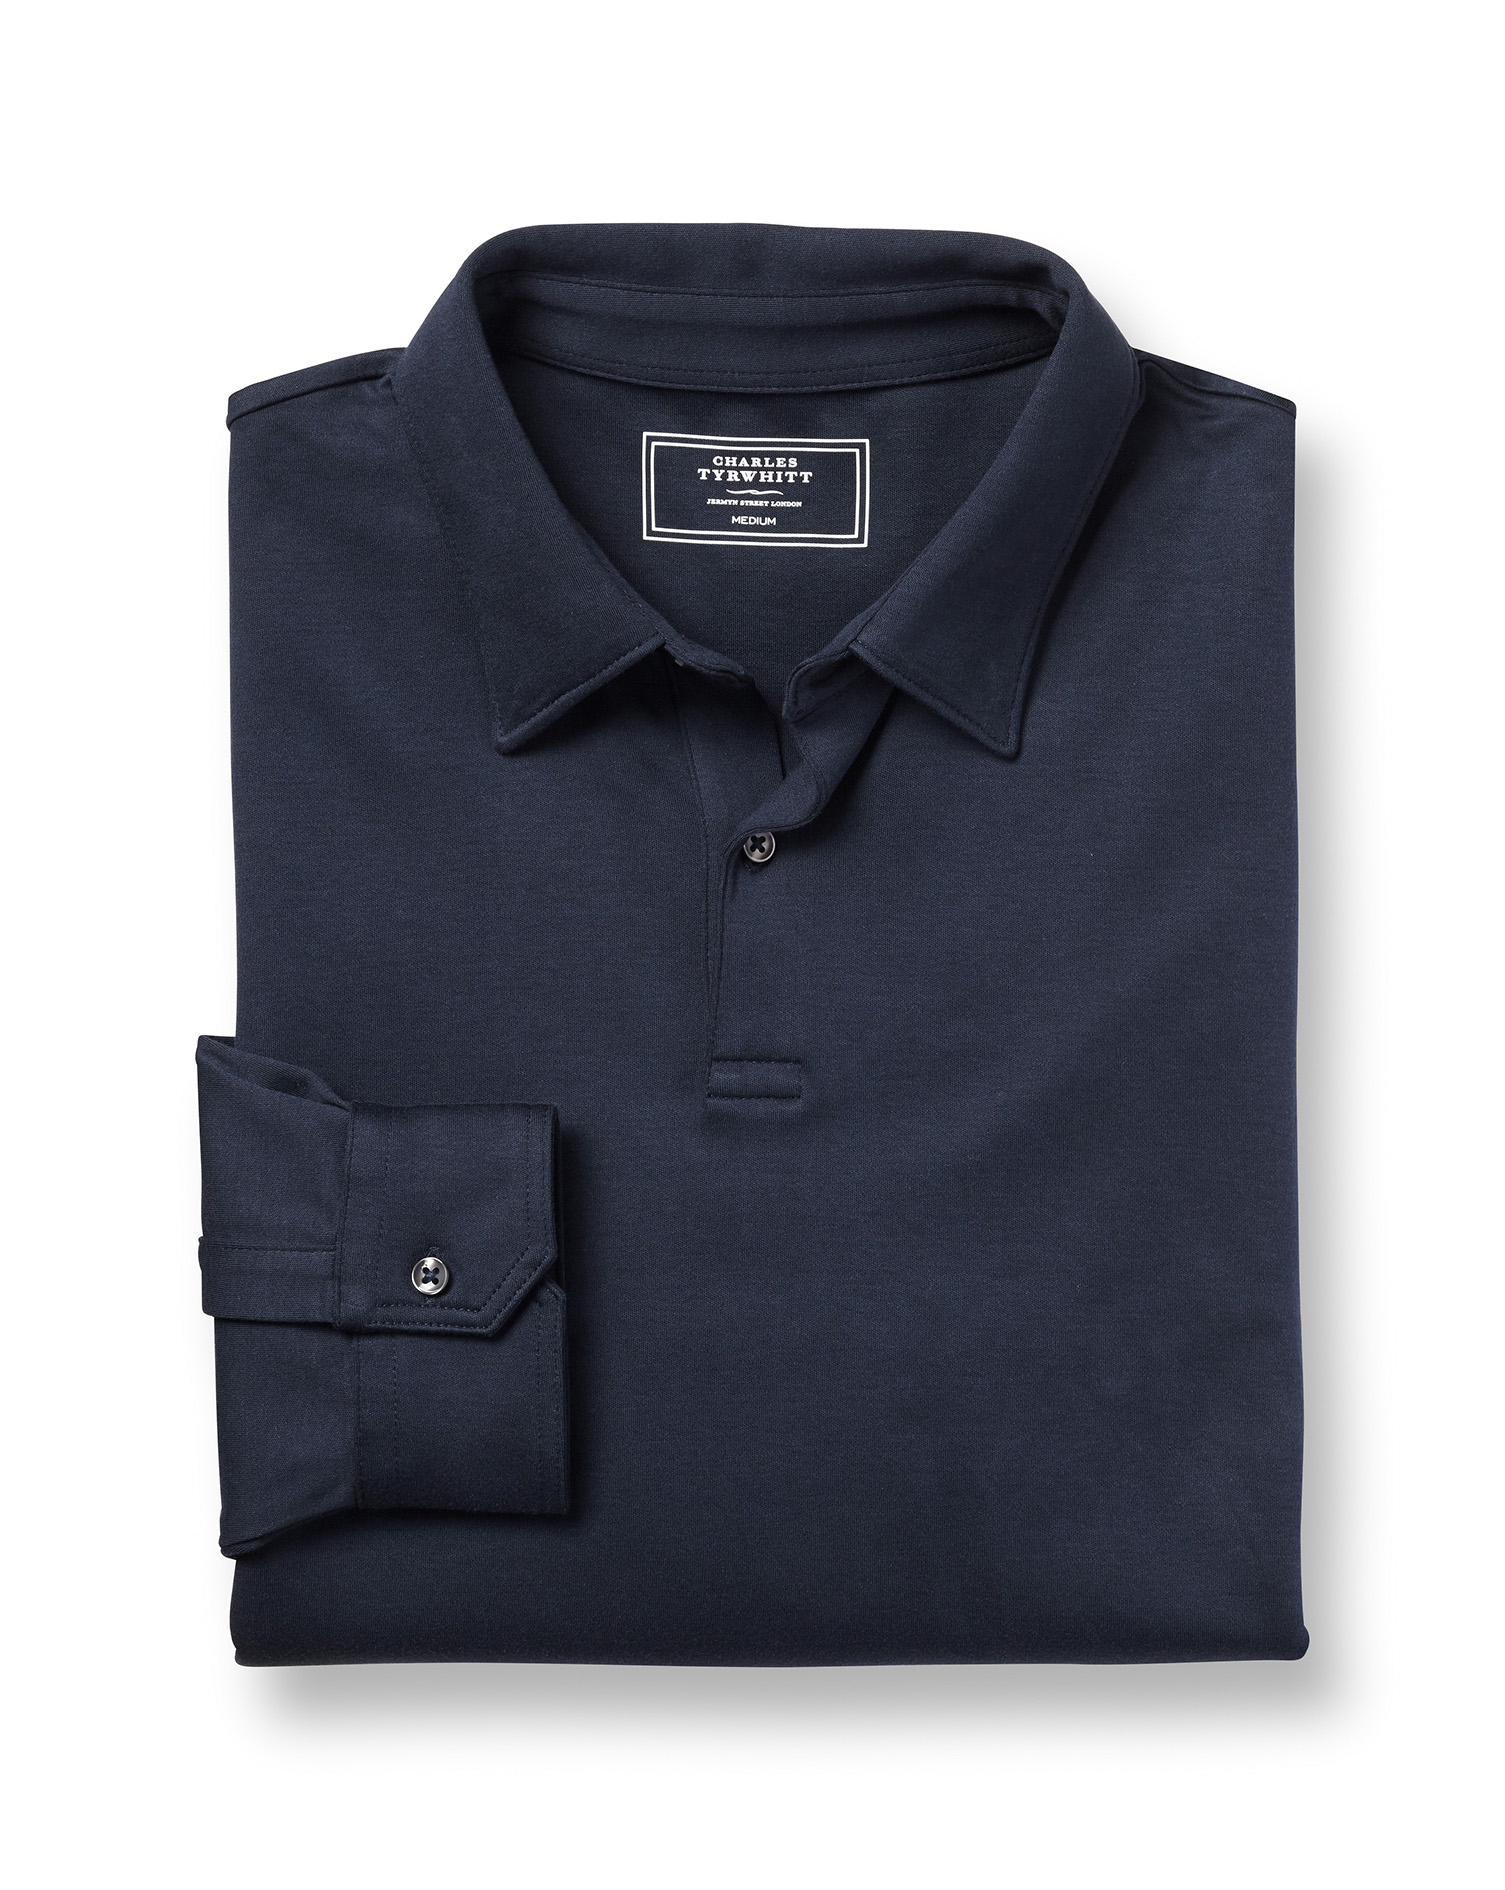 Plain Navy Long Sleeve Jersey Cotton Polo Size Small by Charles Tyrwhitt